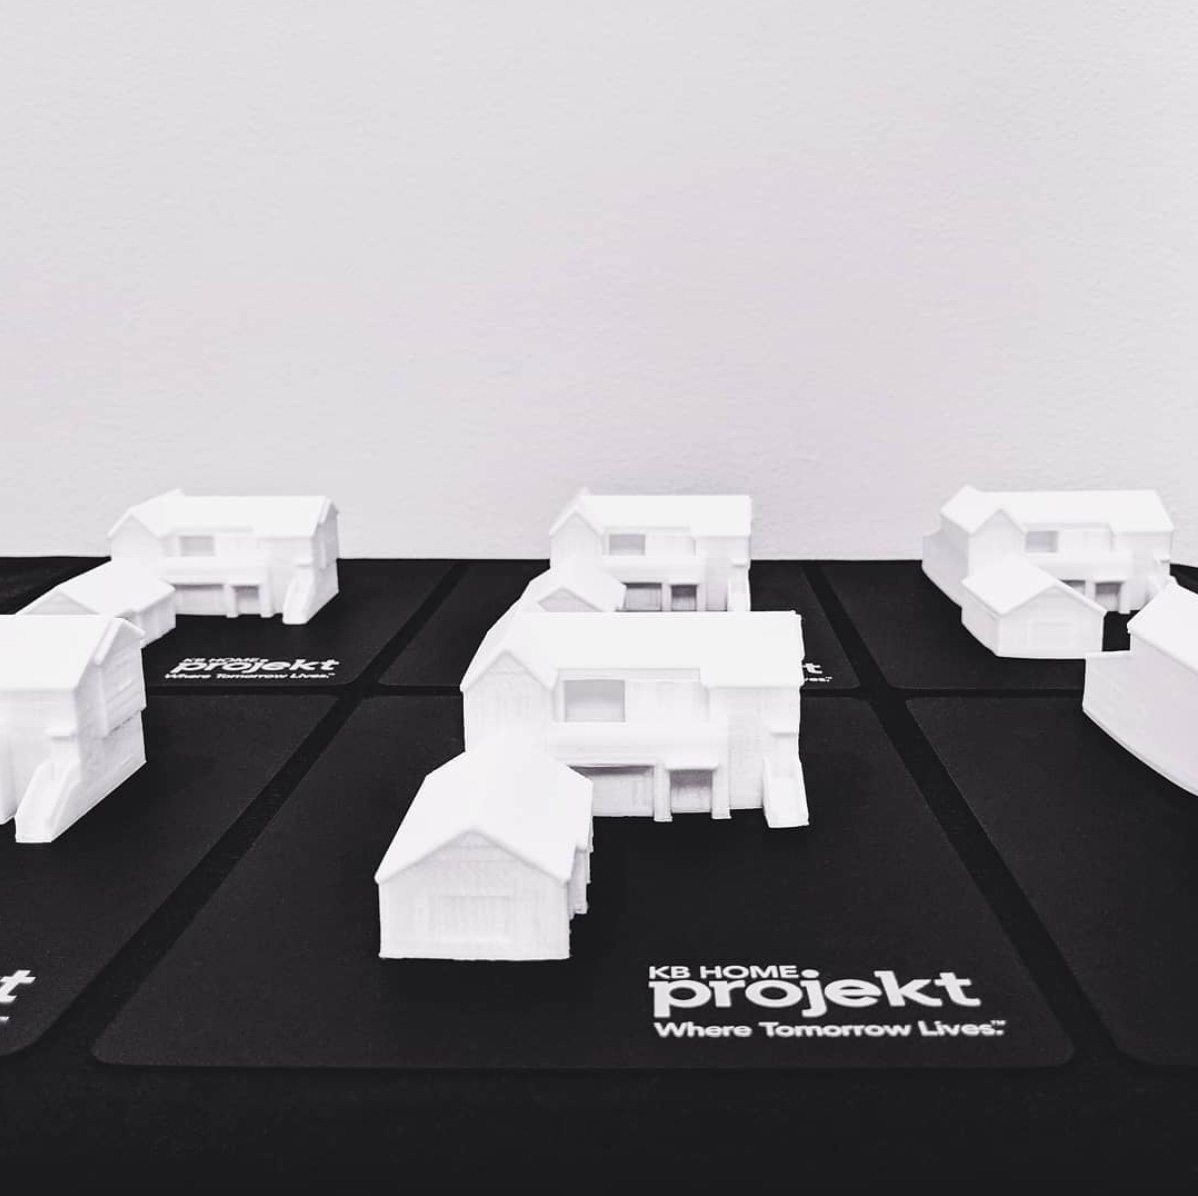 3D printed mini houses